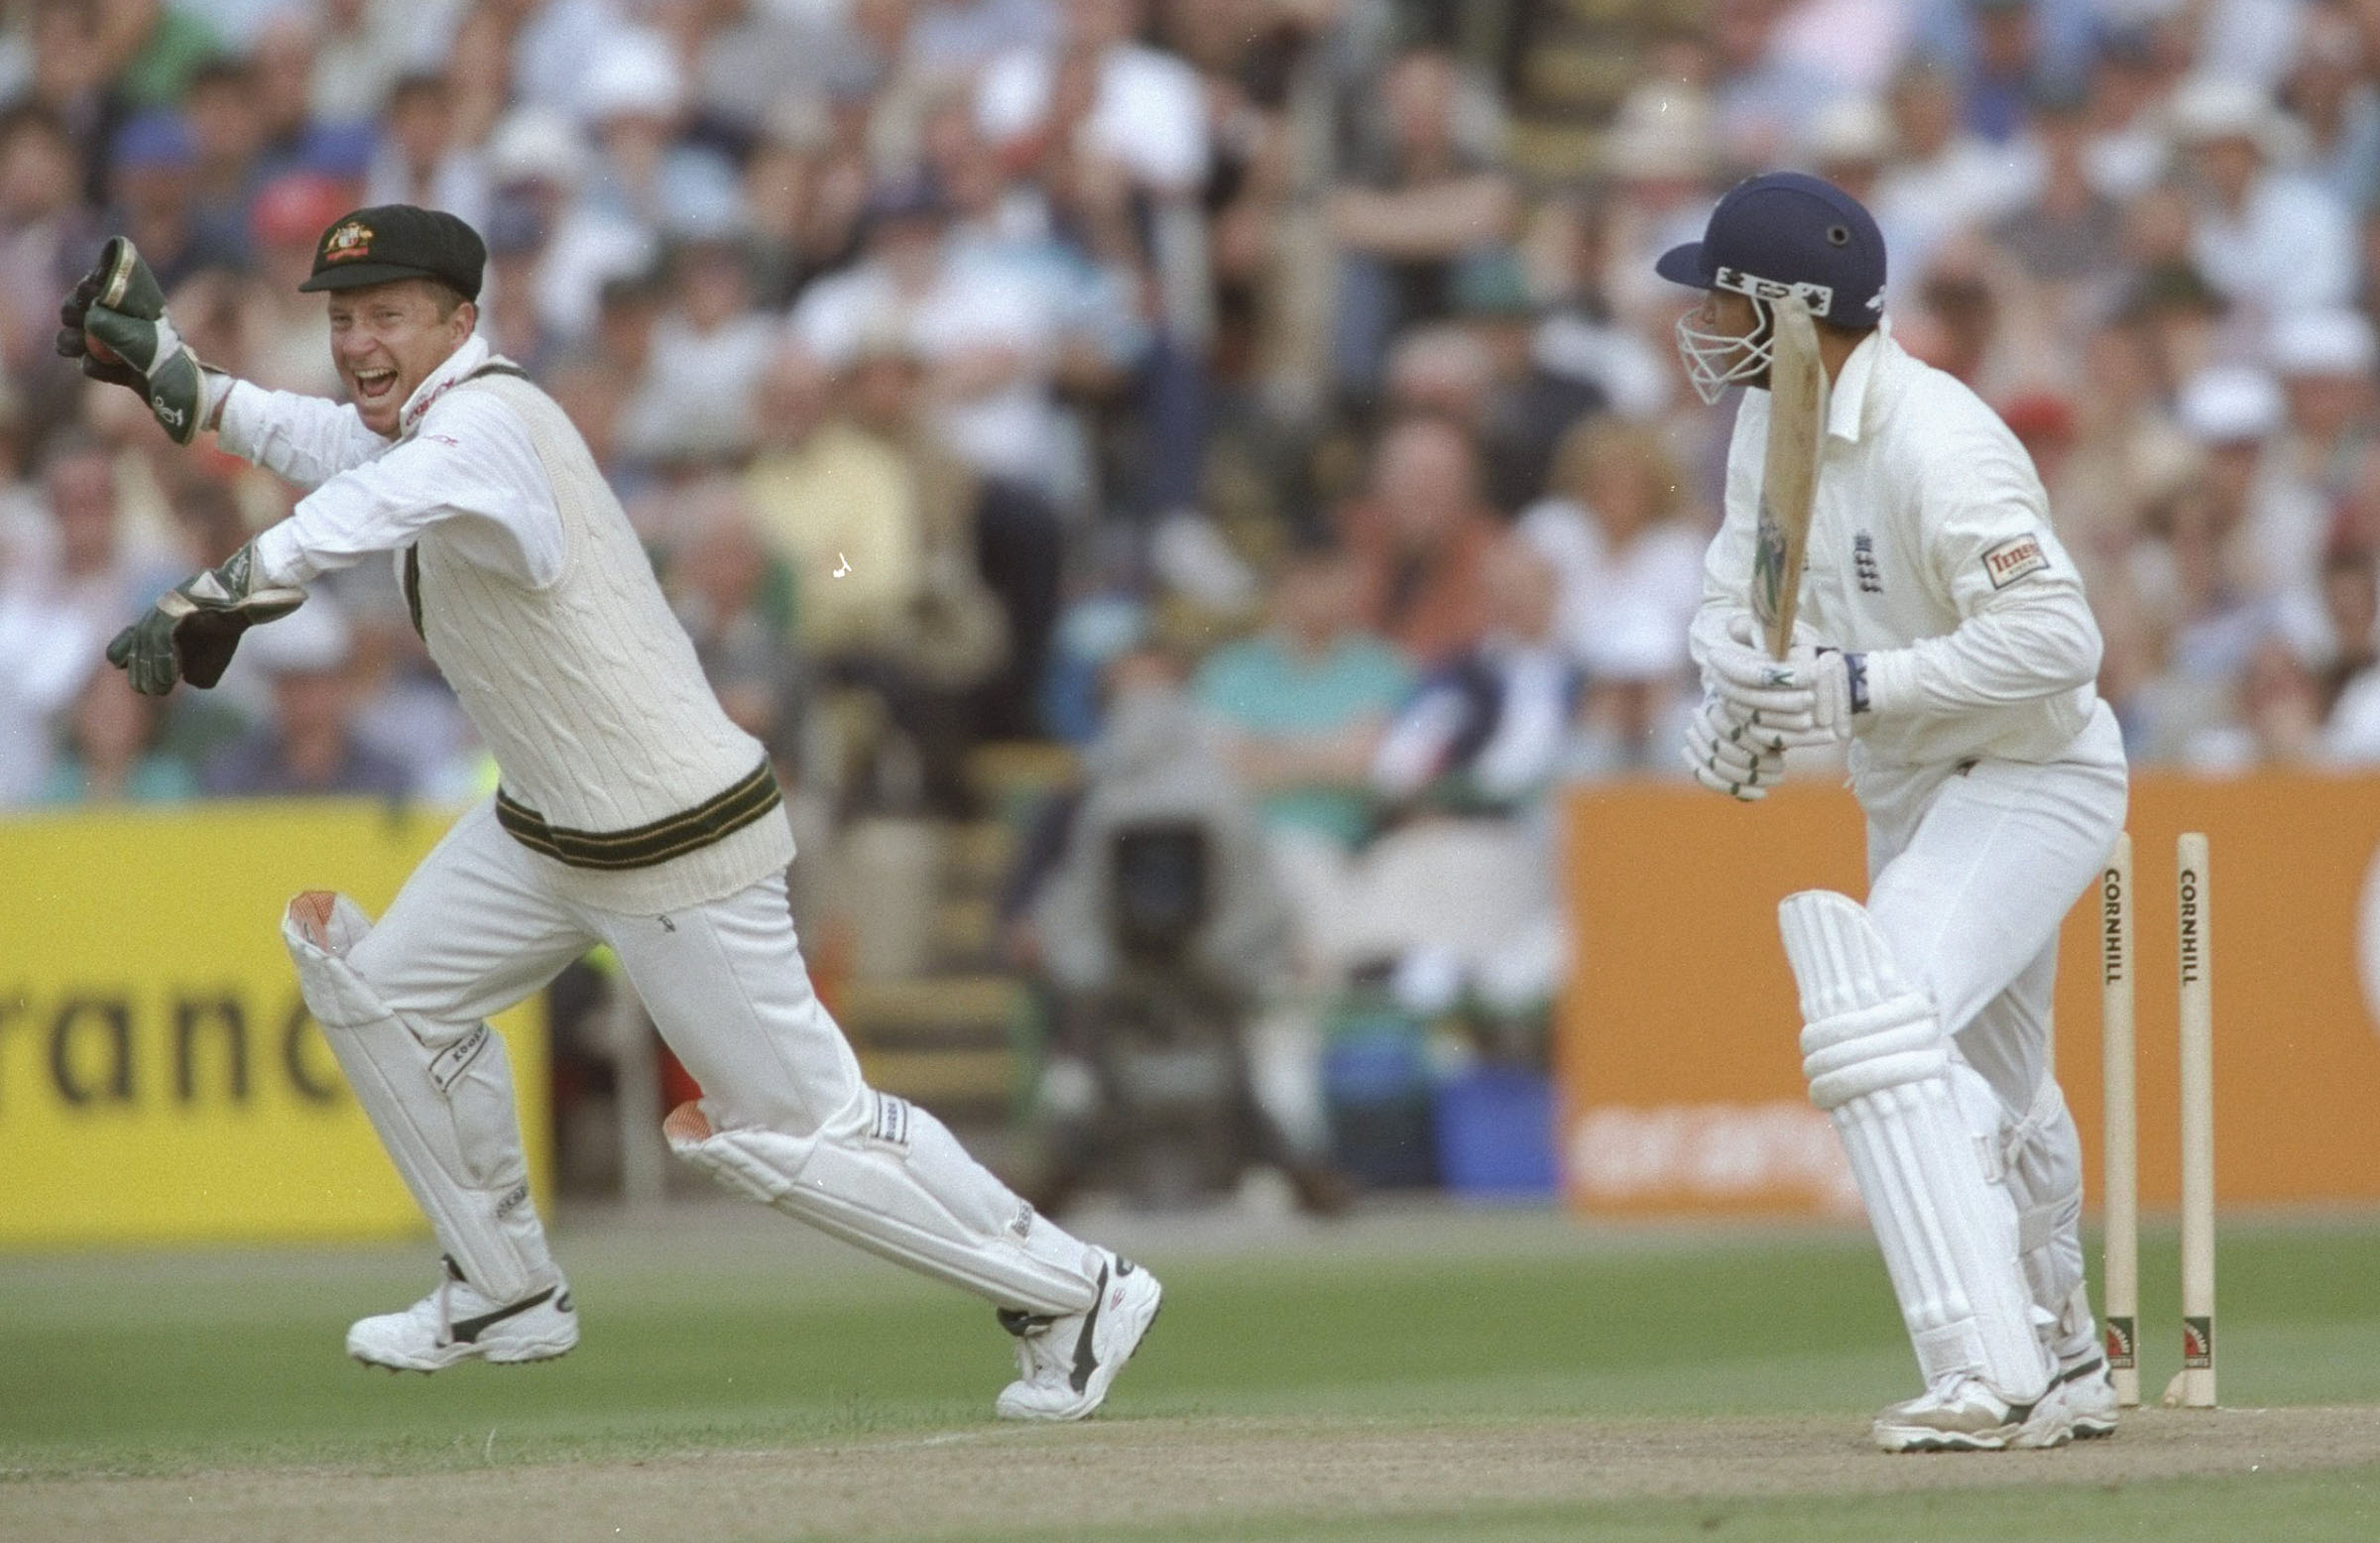 Healy celebrates his stumping of Mark Butcher in 1997 // Getty